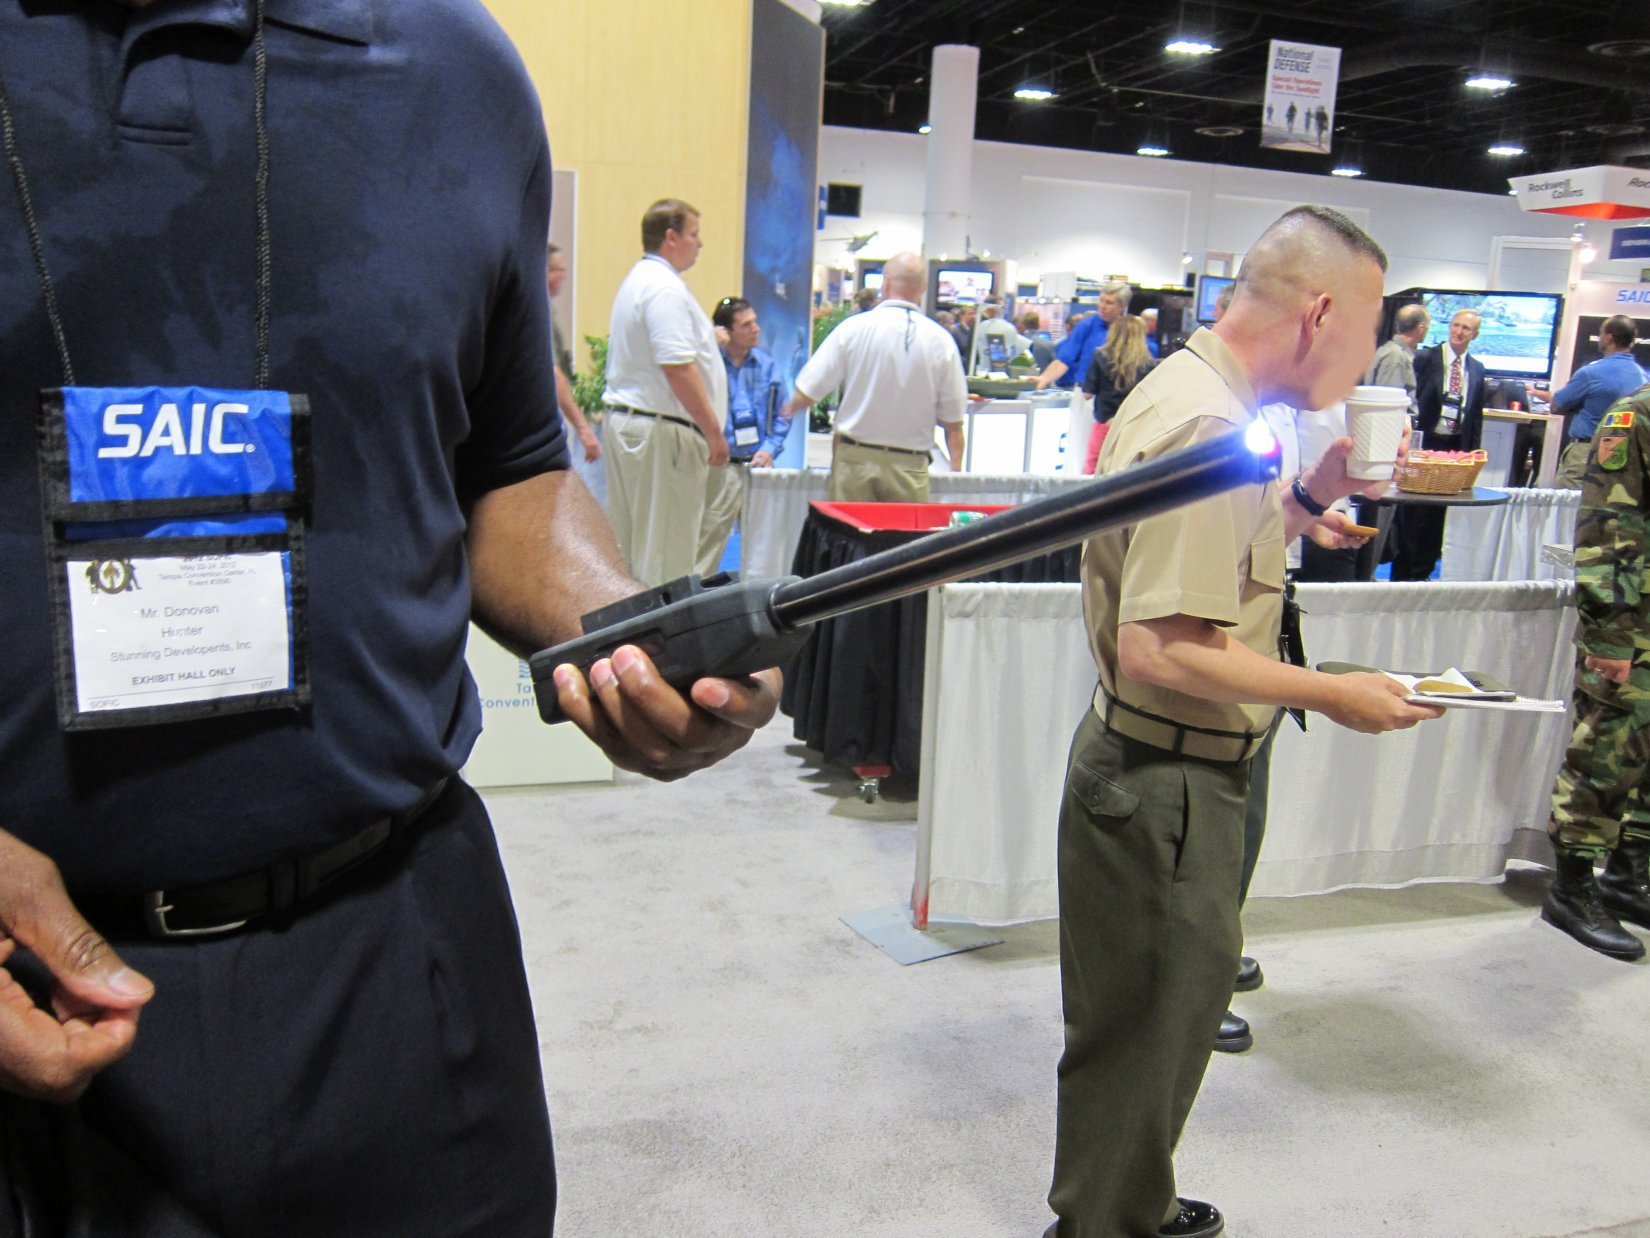 Stunning Developments BattleProd Combat Tactical Stun Baton Donovan Hunter NDIA SOFIC 2012 DefenseReview.com DR 4 InfoWars.com and PrisonPlanet.com Publish Piece on DRs BattleProd (also written Battle Prod) Tactical Stun Baton Piece  and a Firestorm Erupts!